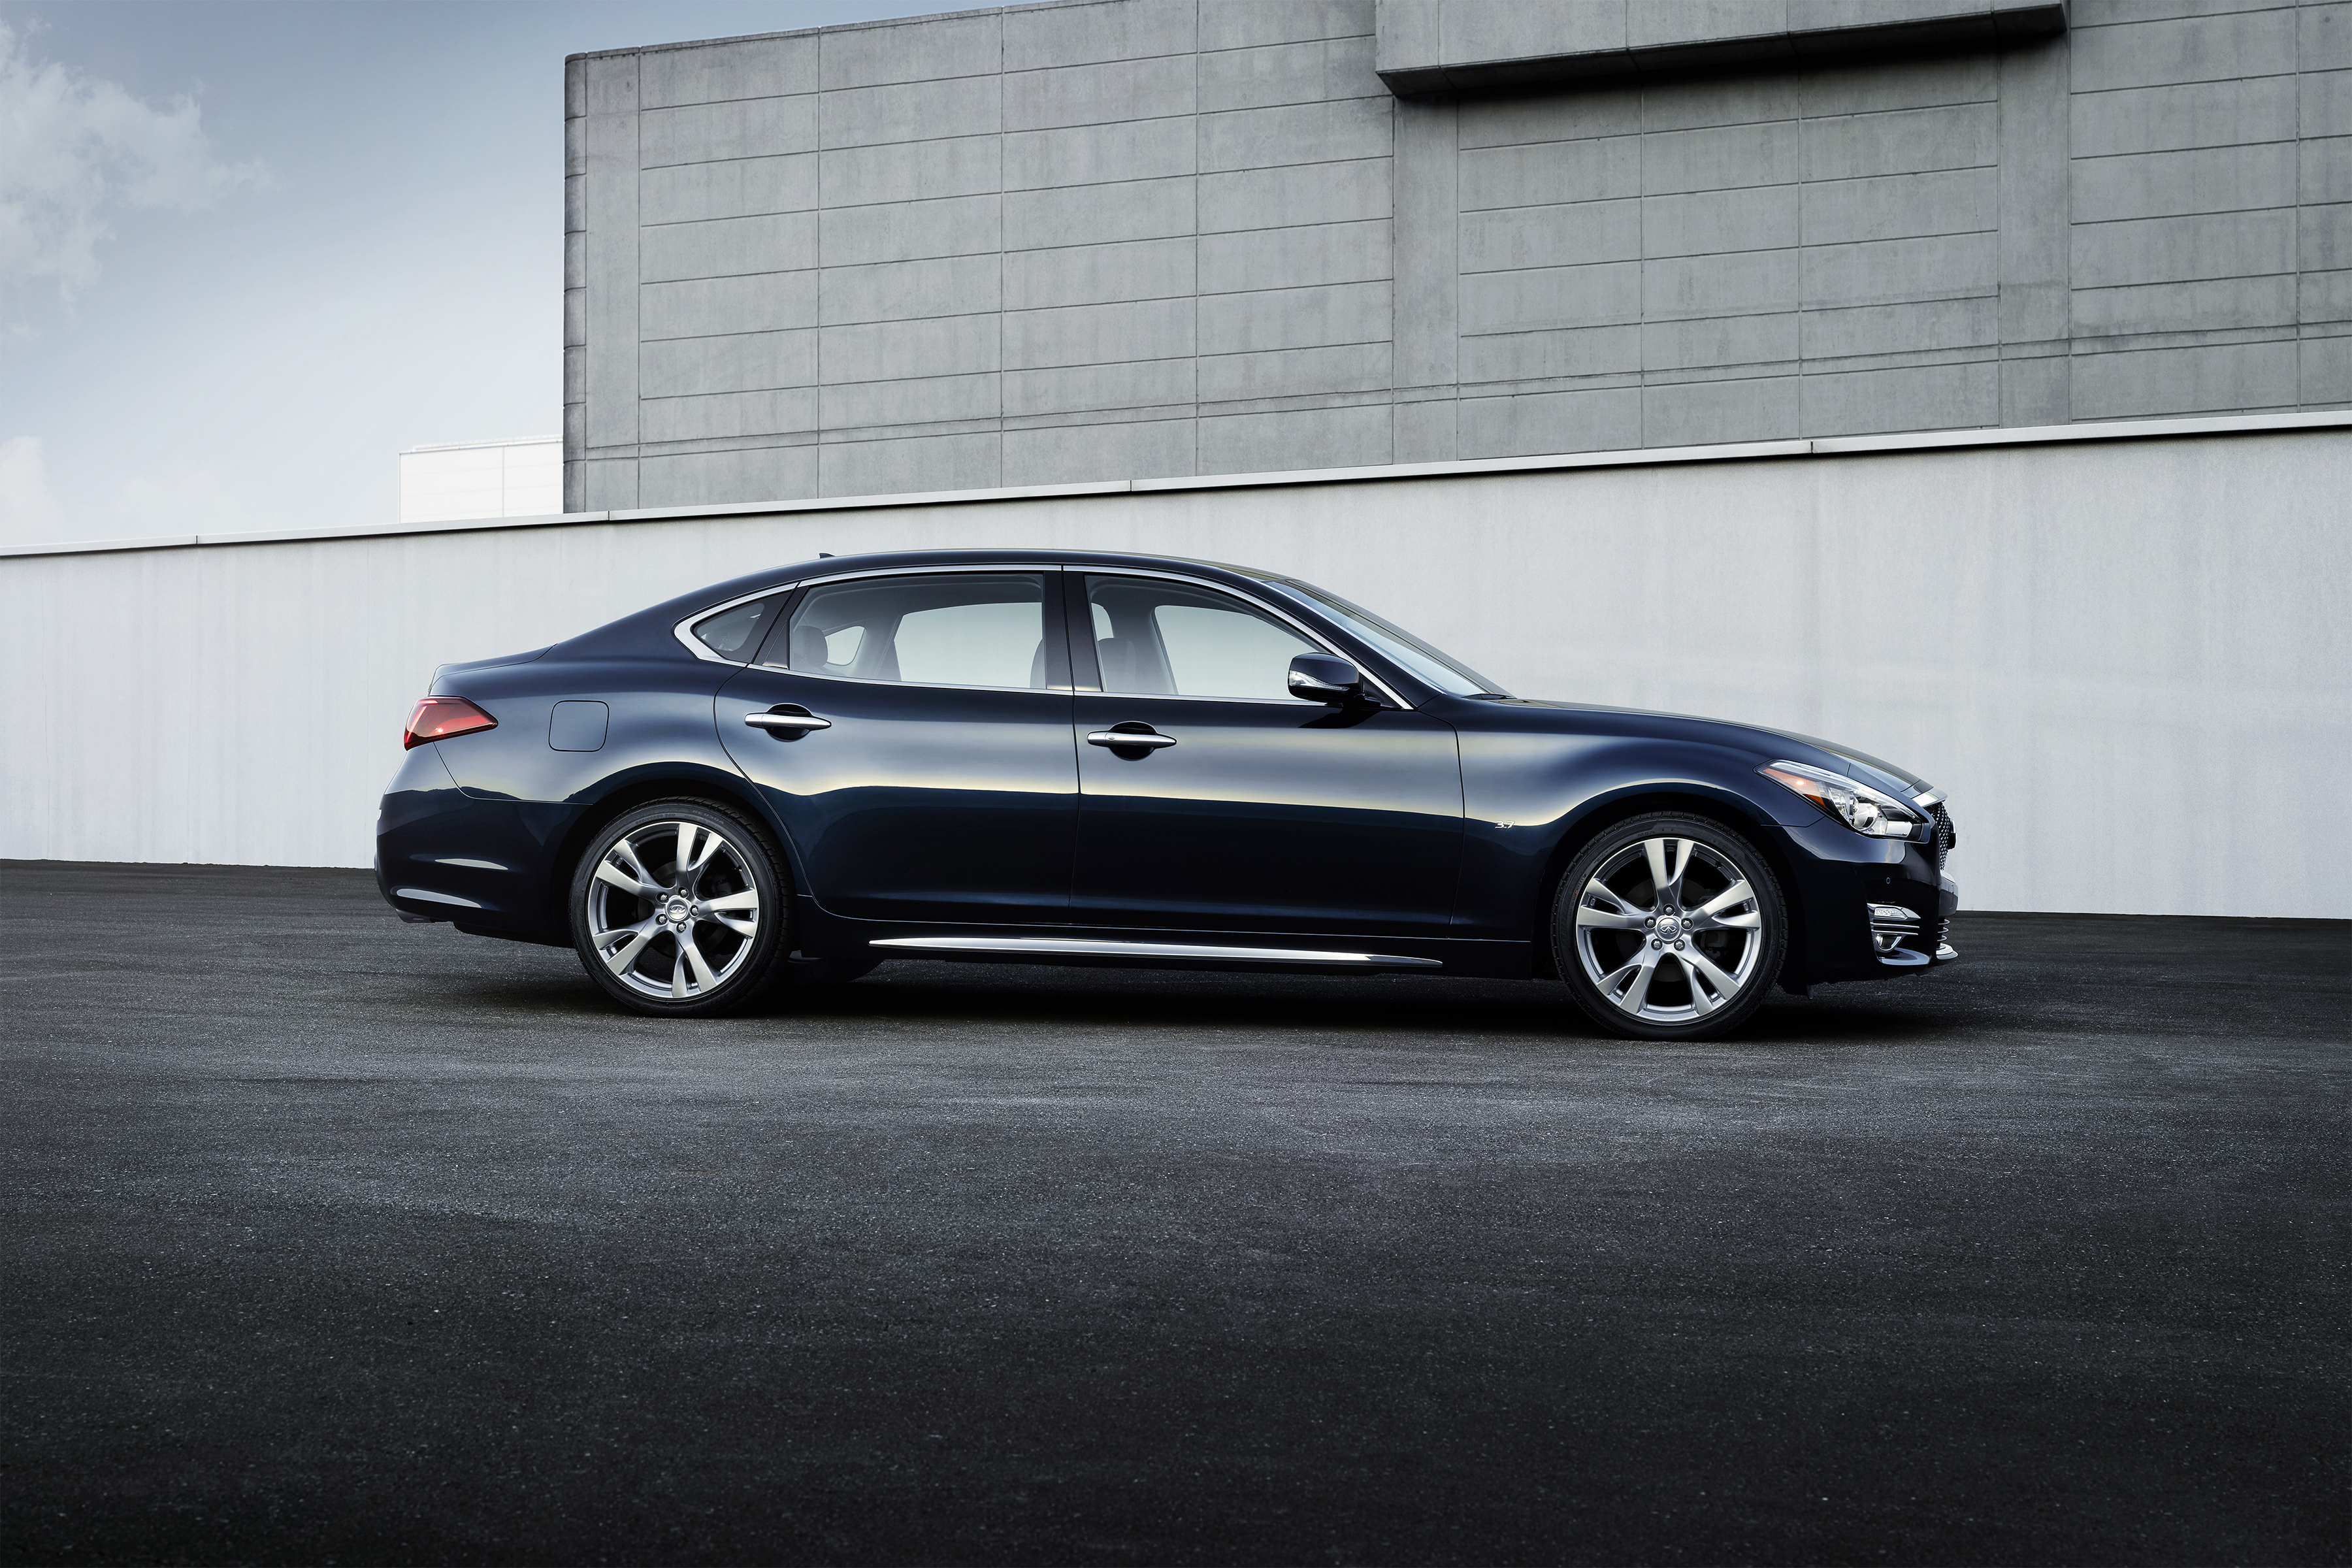 infinity images lease and photo specification infiniti specs auto